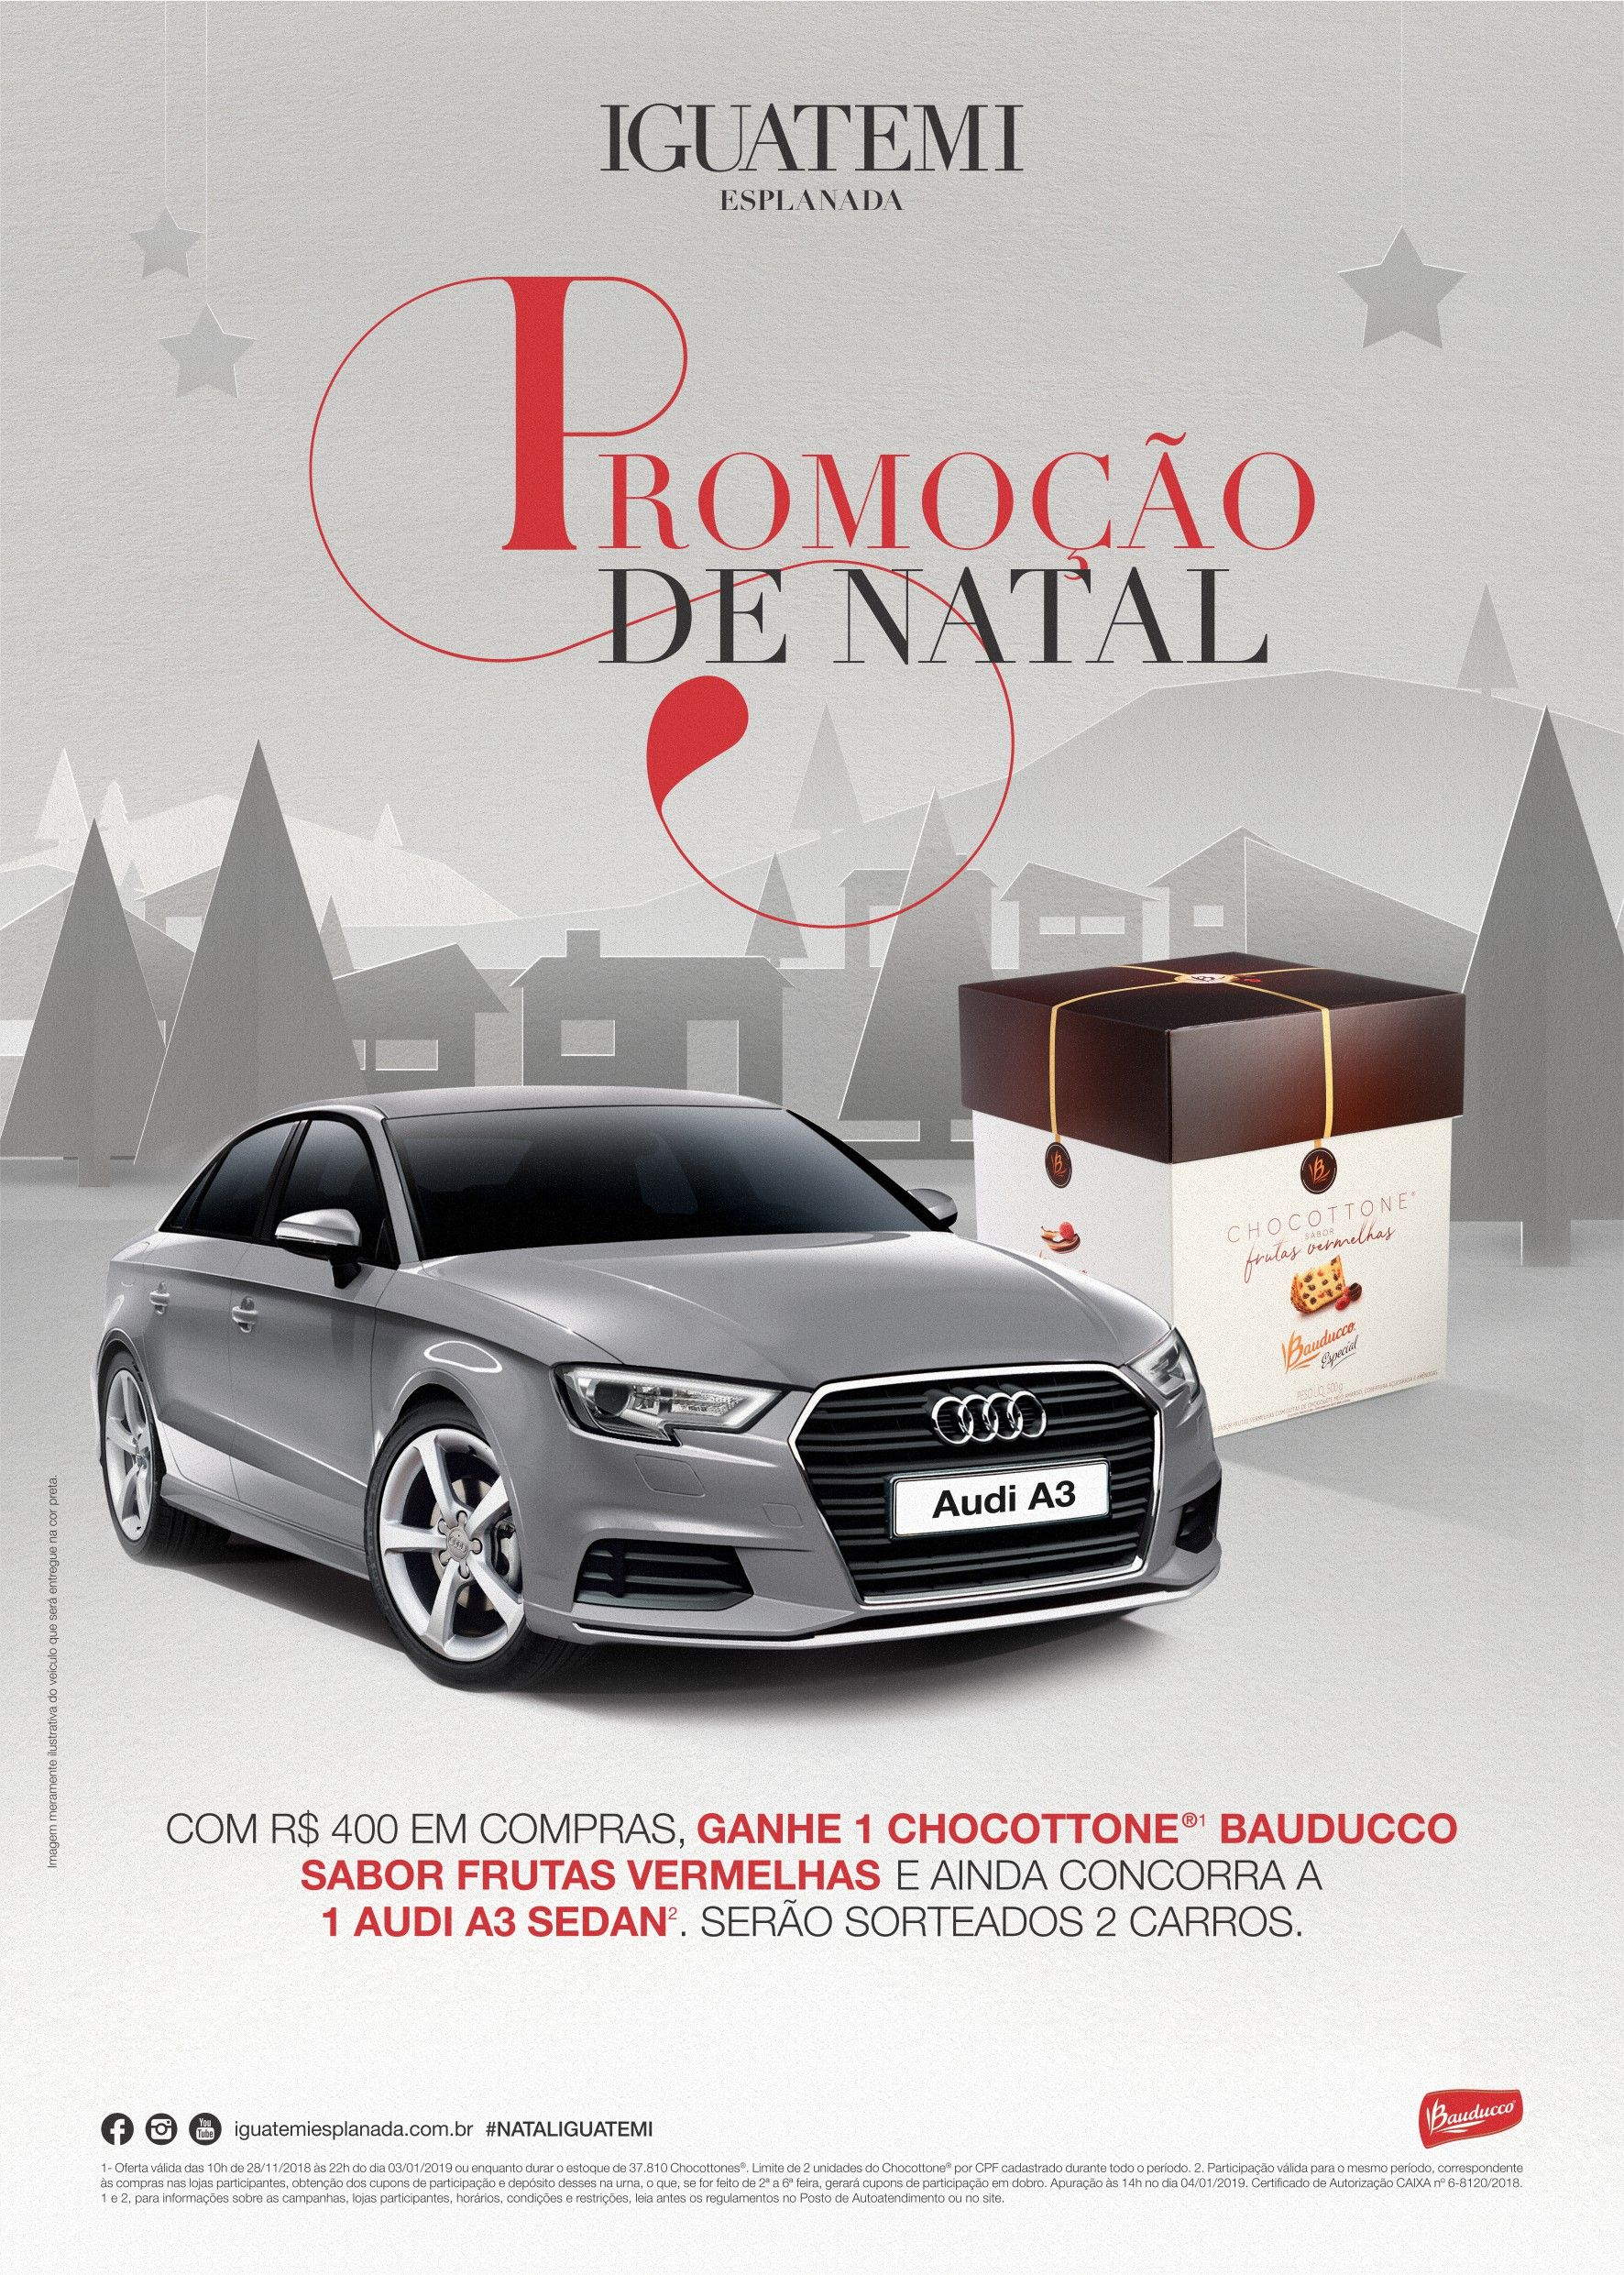 iguatemi esplanada lan a promo o de natal je online. Black Bedroom Furniture Sets. Home Design Ideas